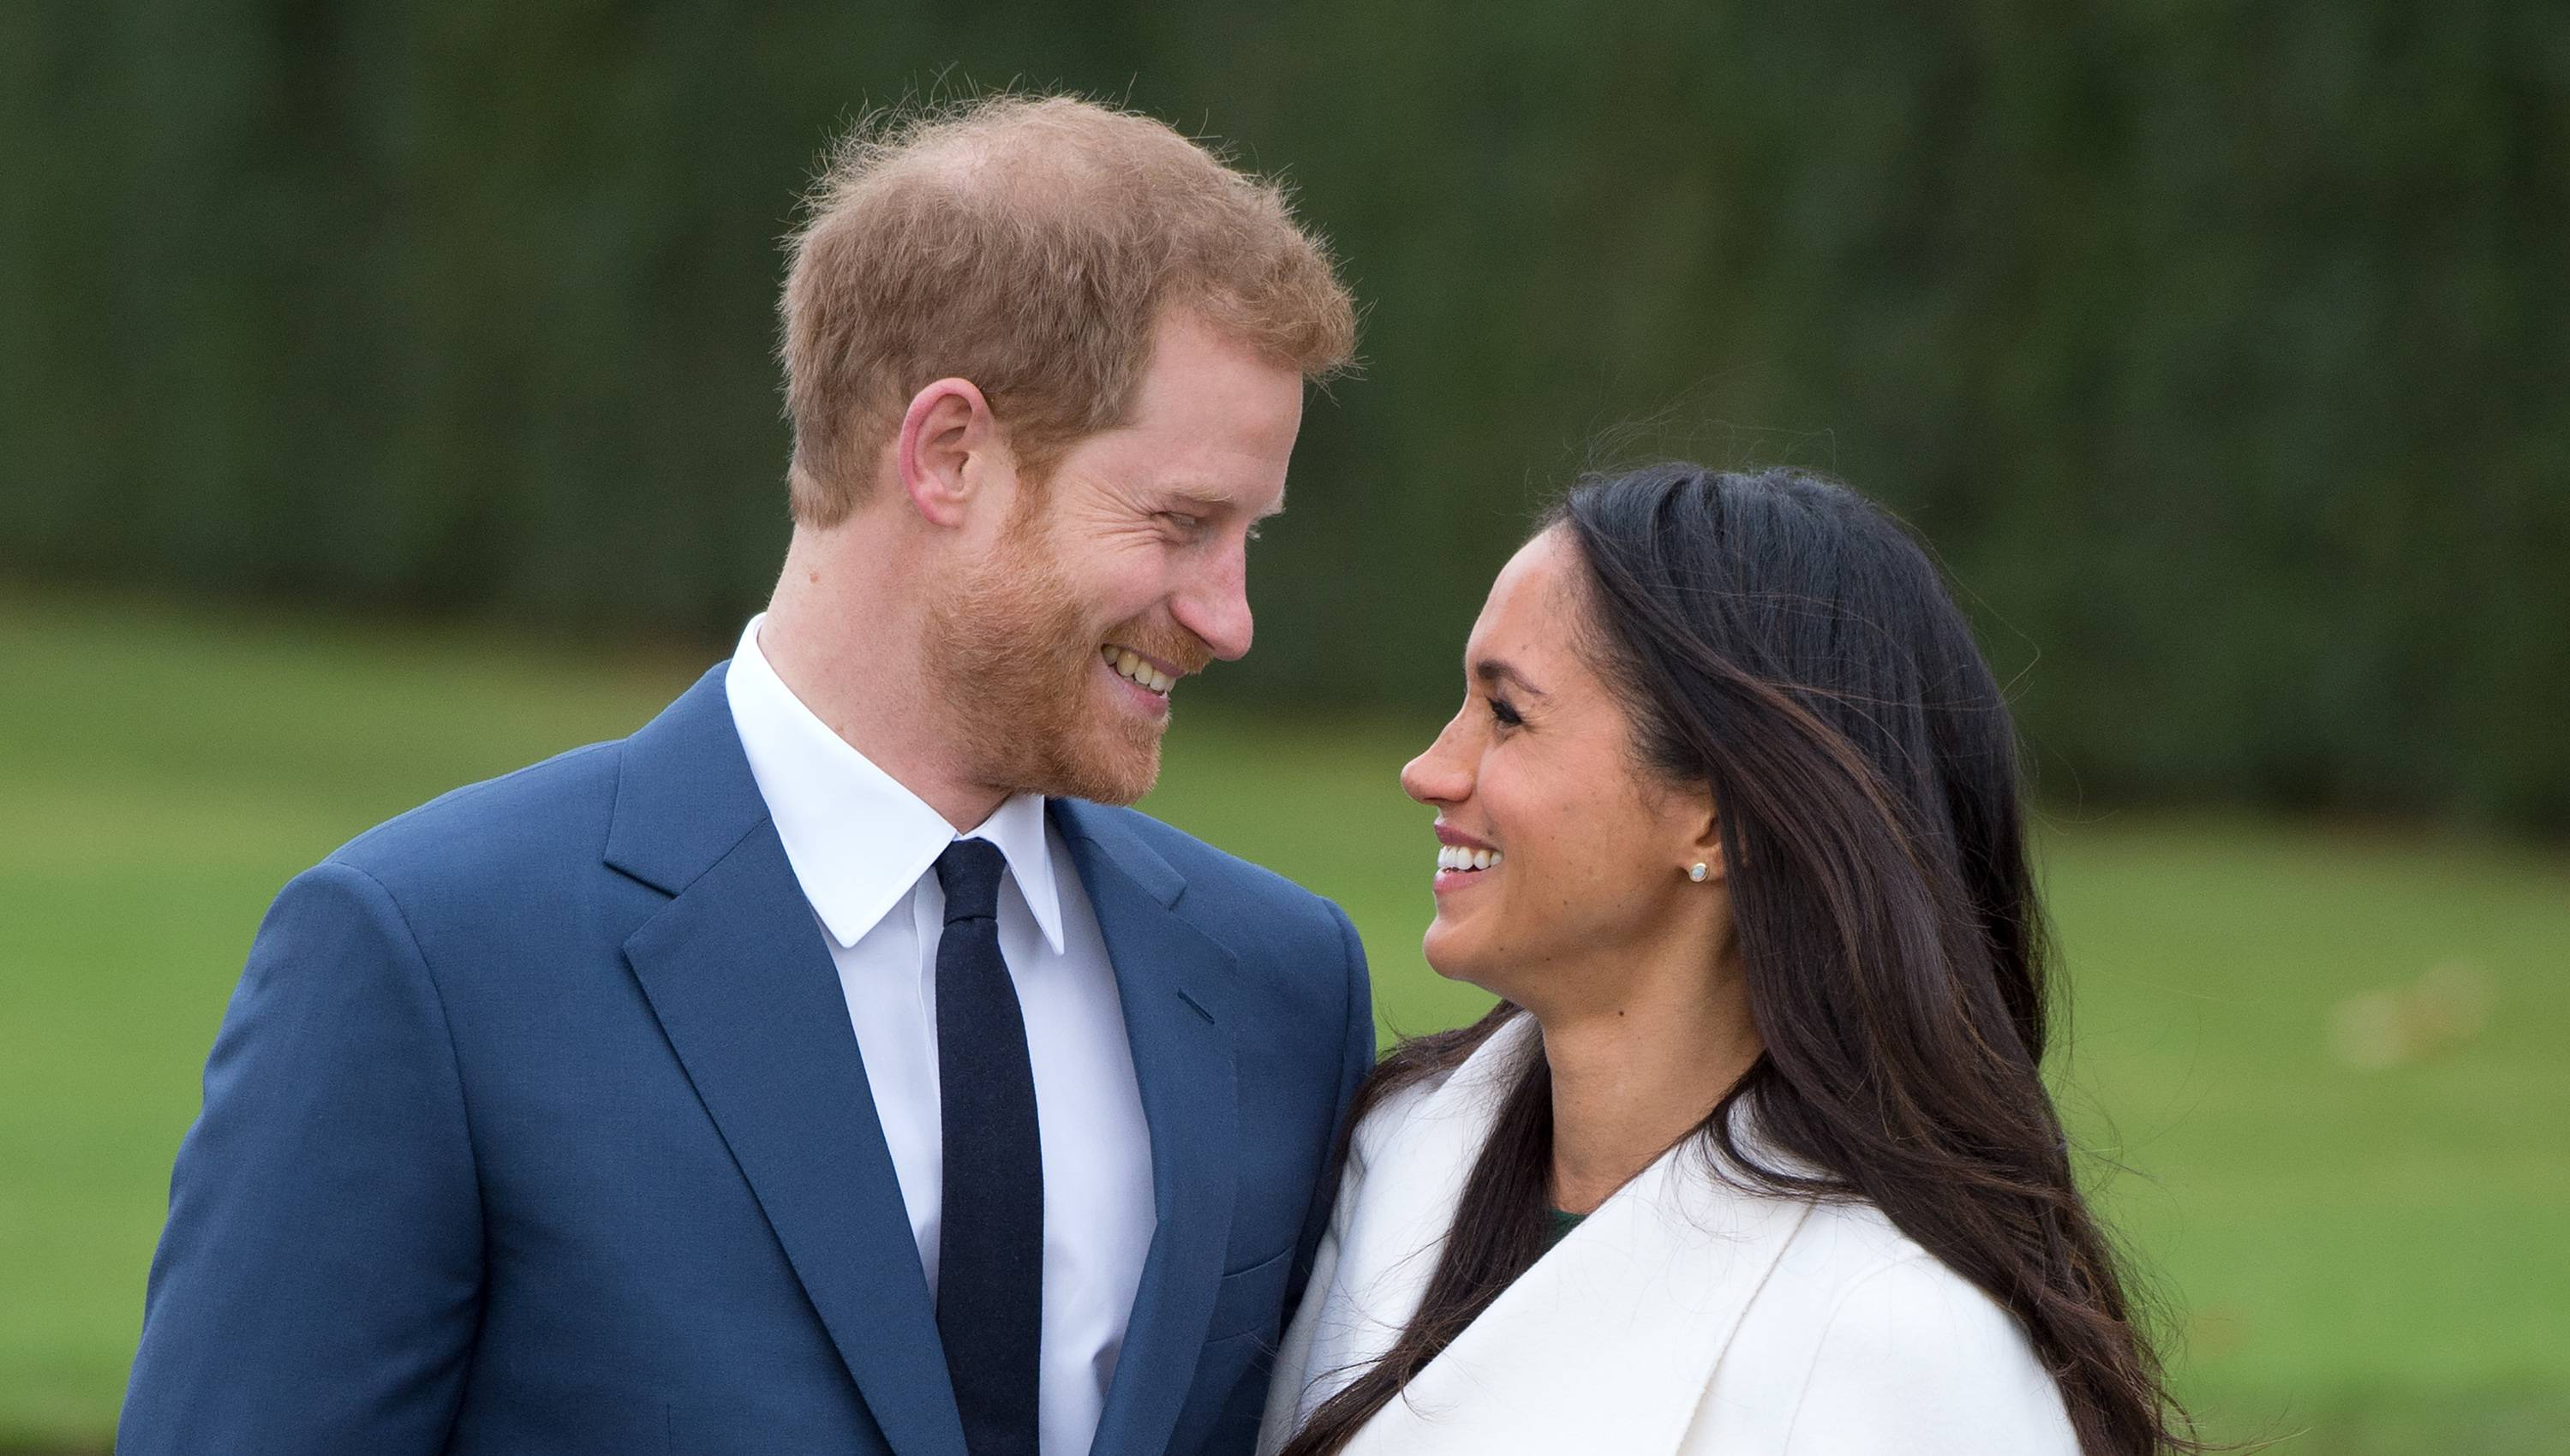 20180411 160253 049657 gettyimages 937380594 - Royal Wedding Watch Party